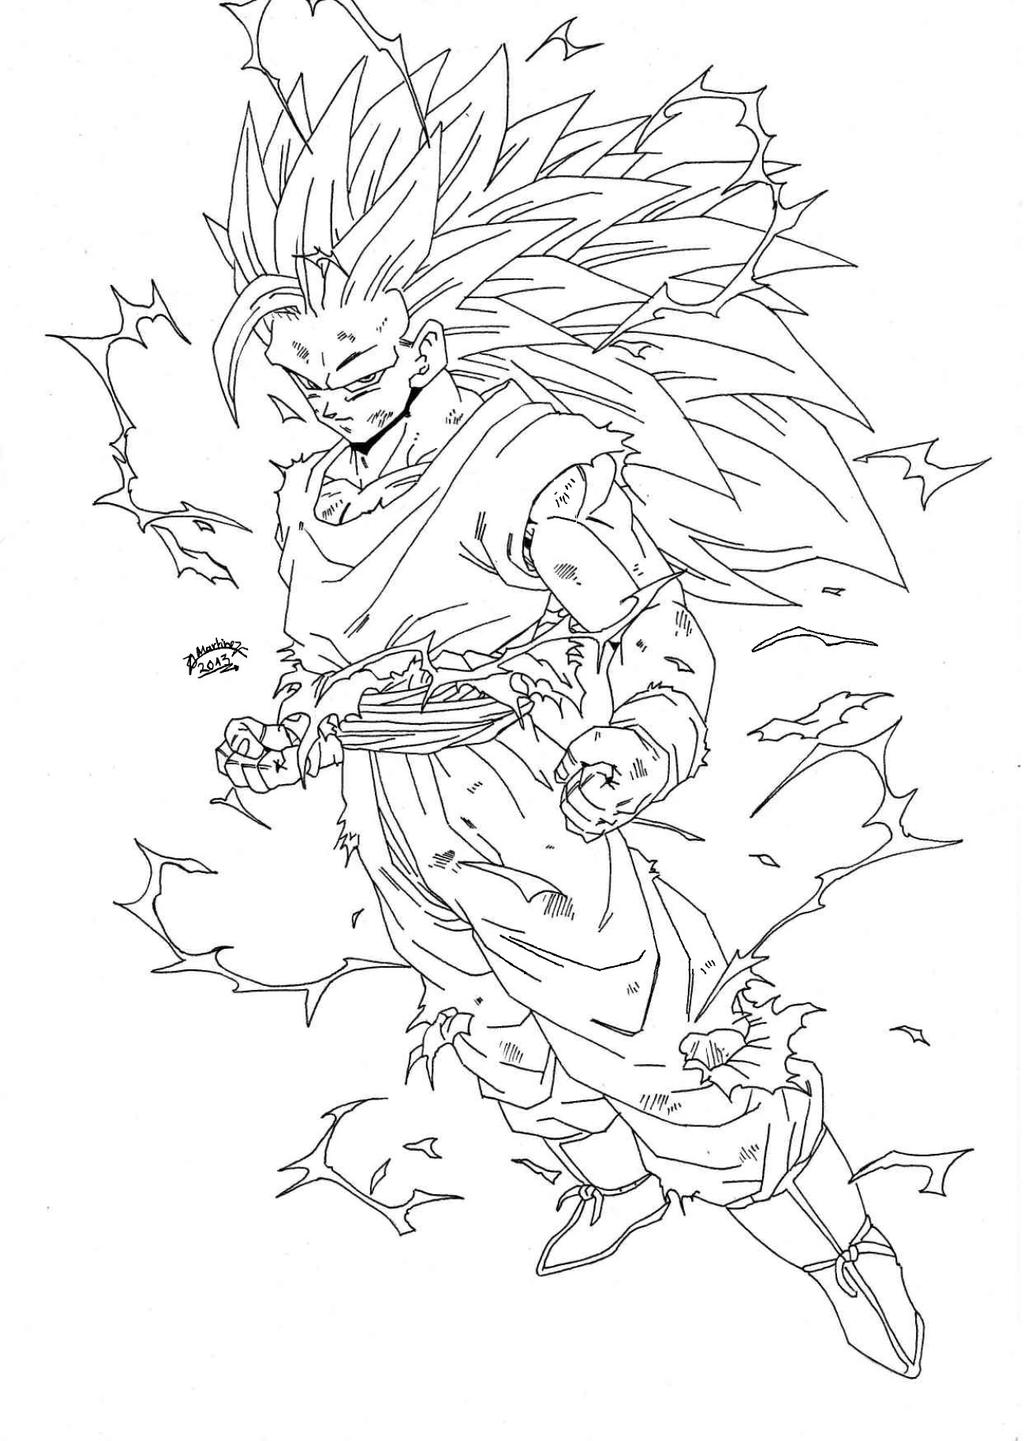 goku ssj3 coloring pages - dragonball z regreso goku super sayan 3 lineart by